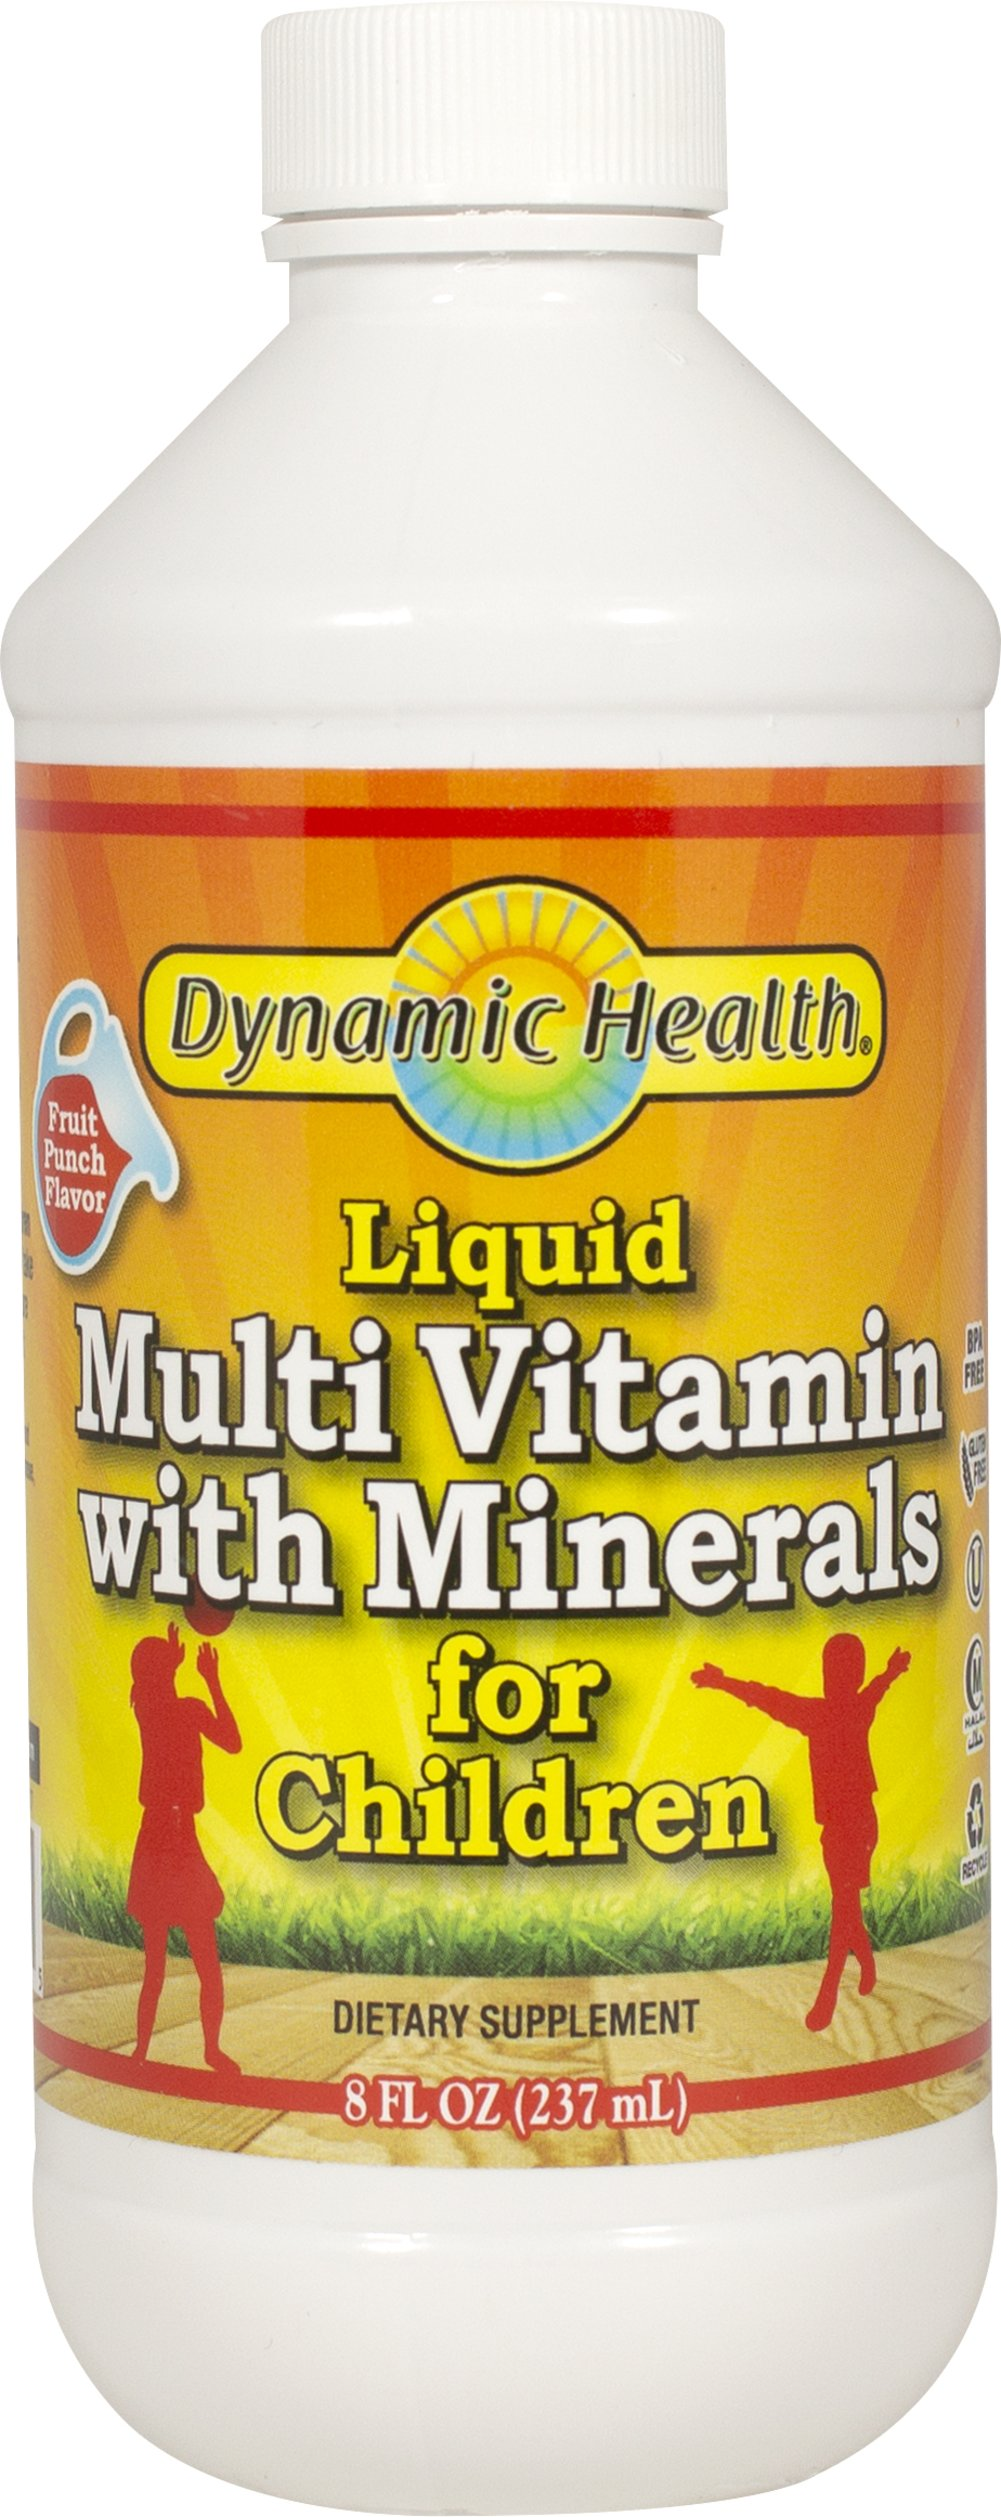 Children's Liquid Multivitamins & Minerals  8 fl oz Liquid  $5.99